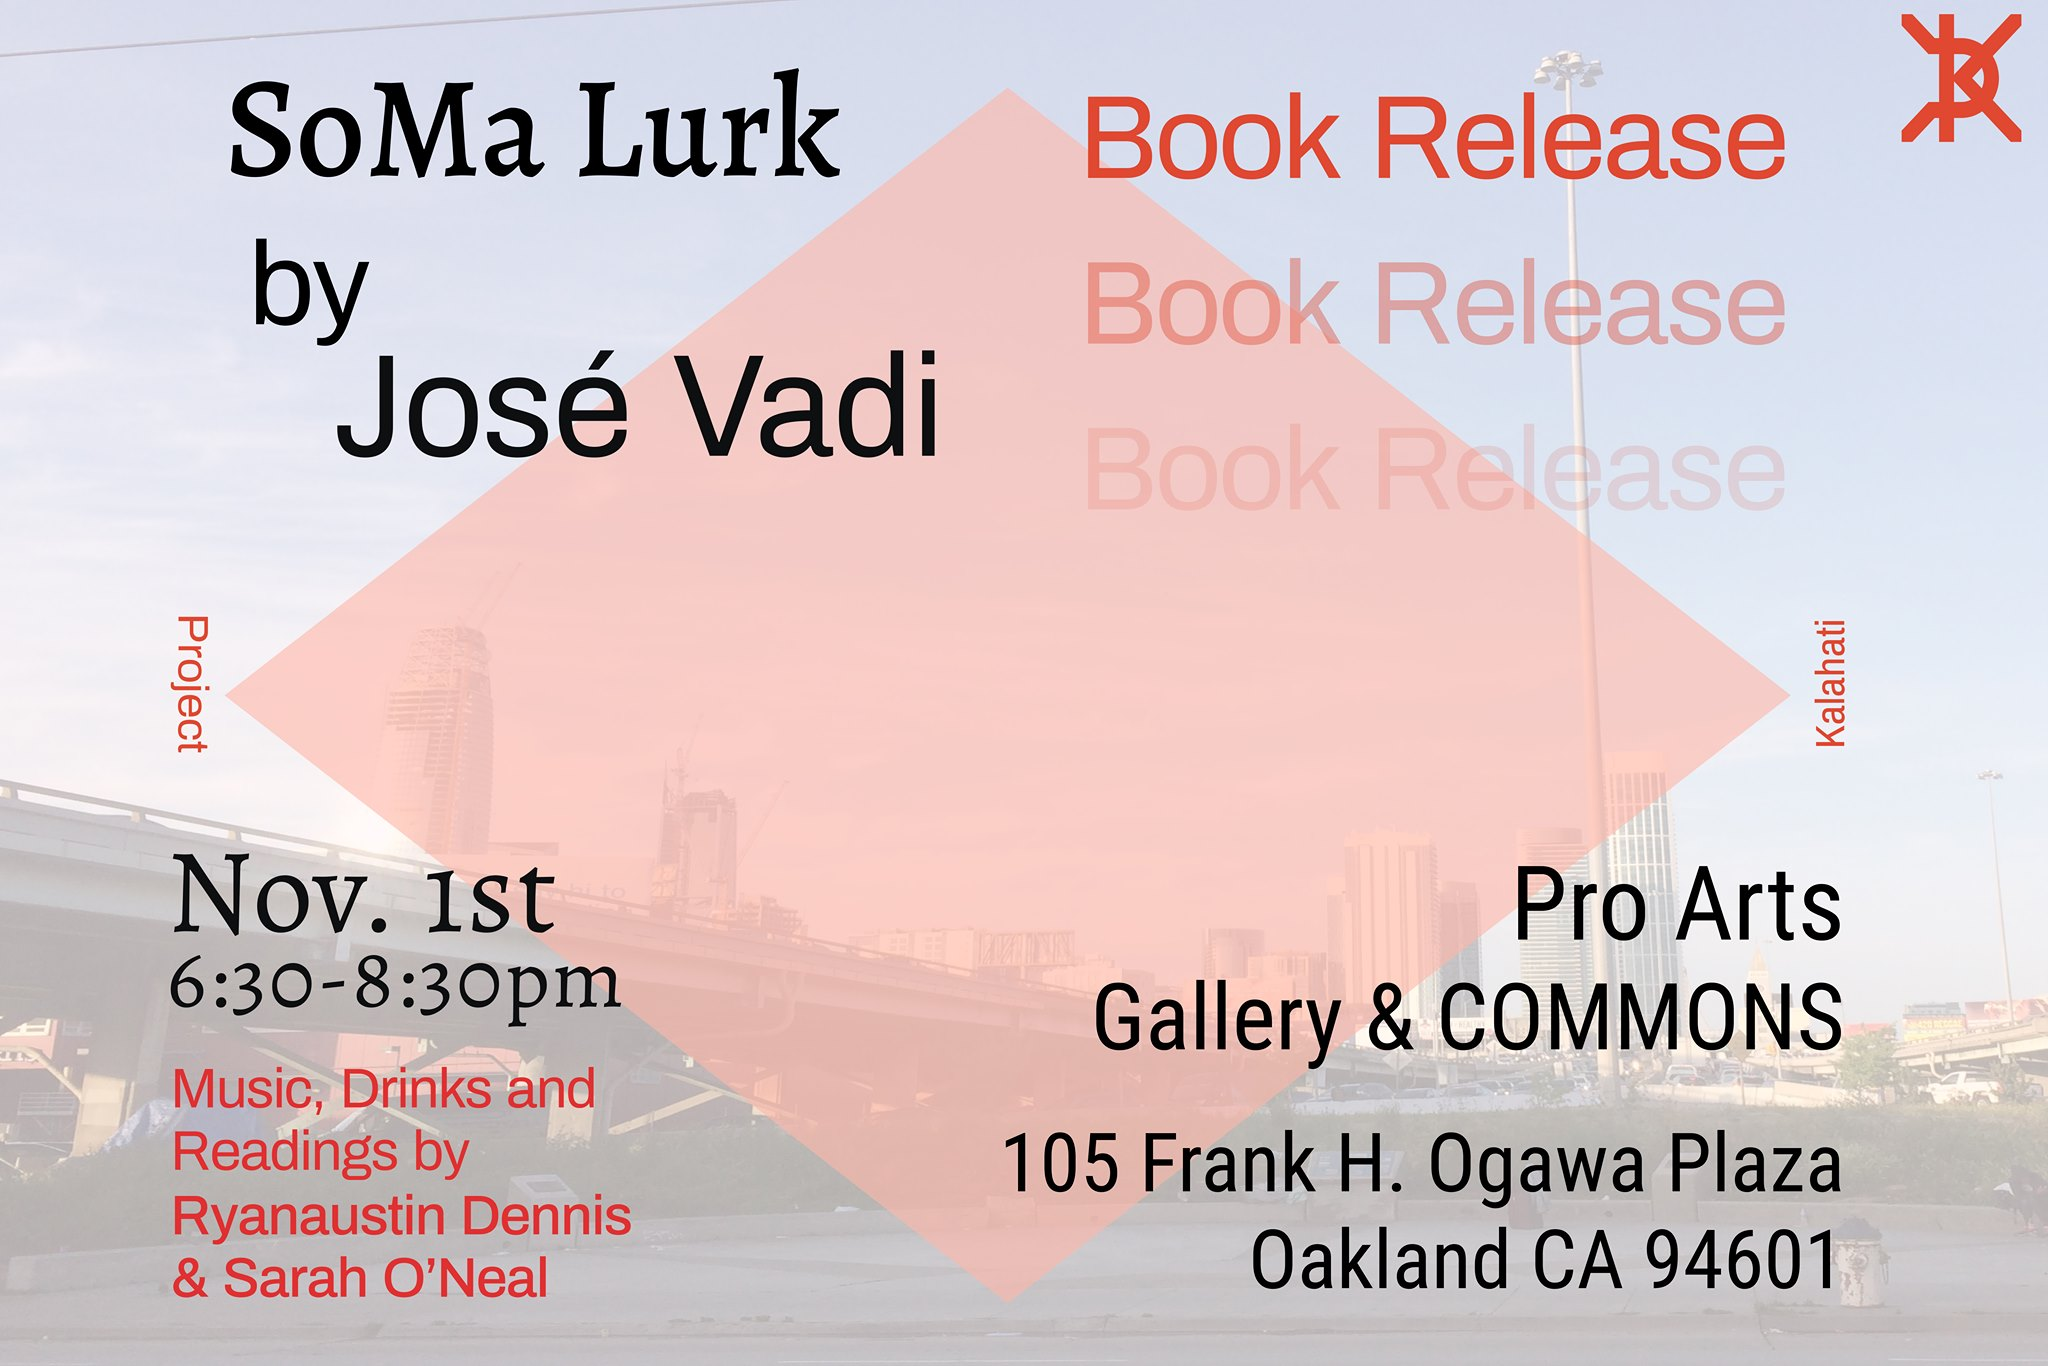 flier for SoMa Lurk launch party